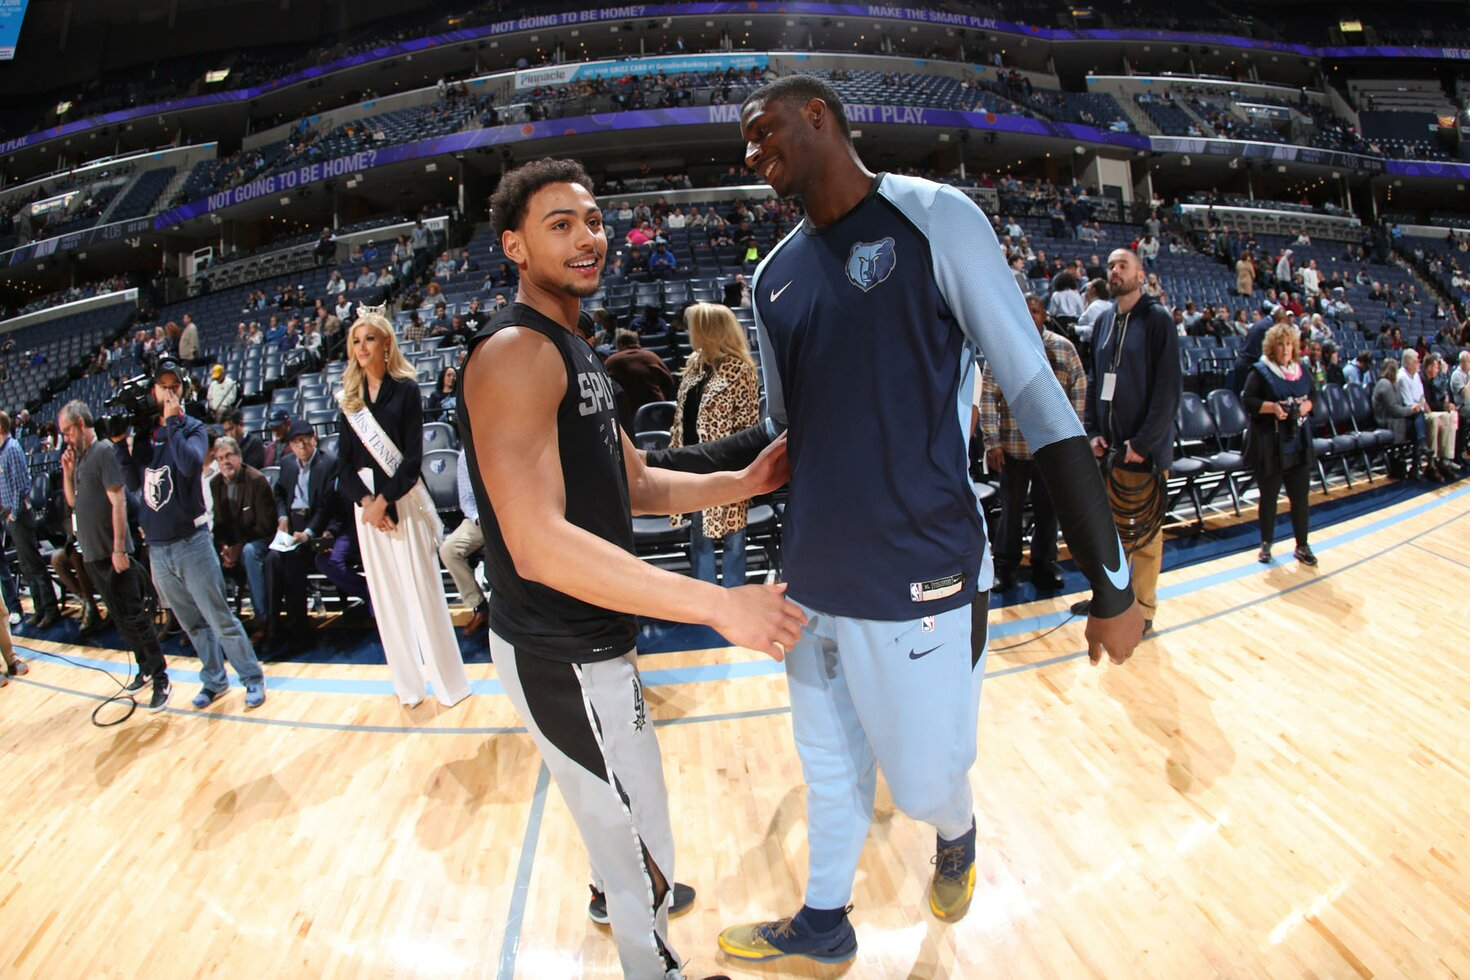 MEMPHIS, TN - JANUARY 9: Bryn Forbes #11 of the San Antonio Spurs and Jaren Jackson Jr. #13 of the Memphis Grizzlies smile prior to a game on January 9, 2019 at FedExForum in Memphis, Tennessee.